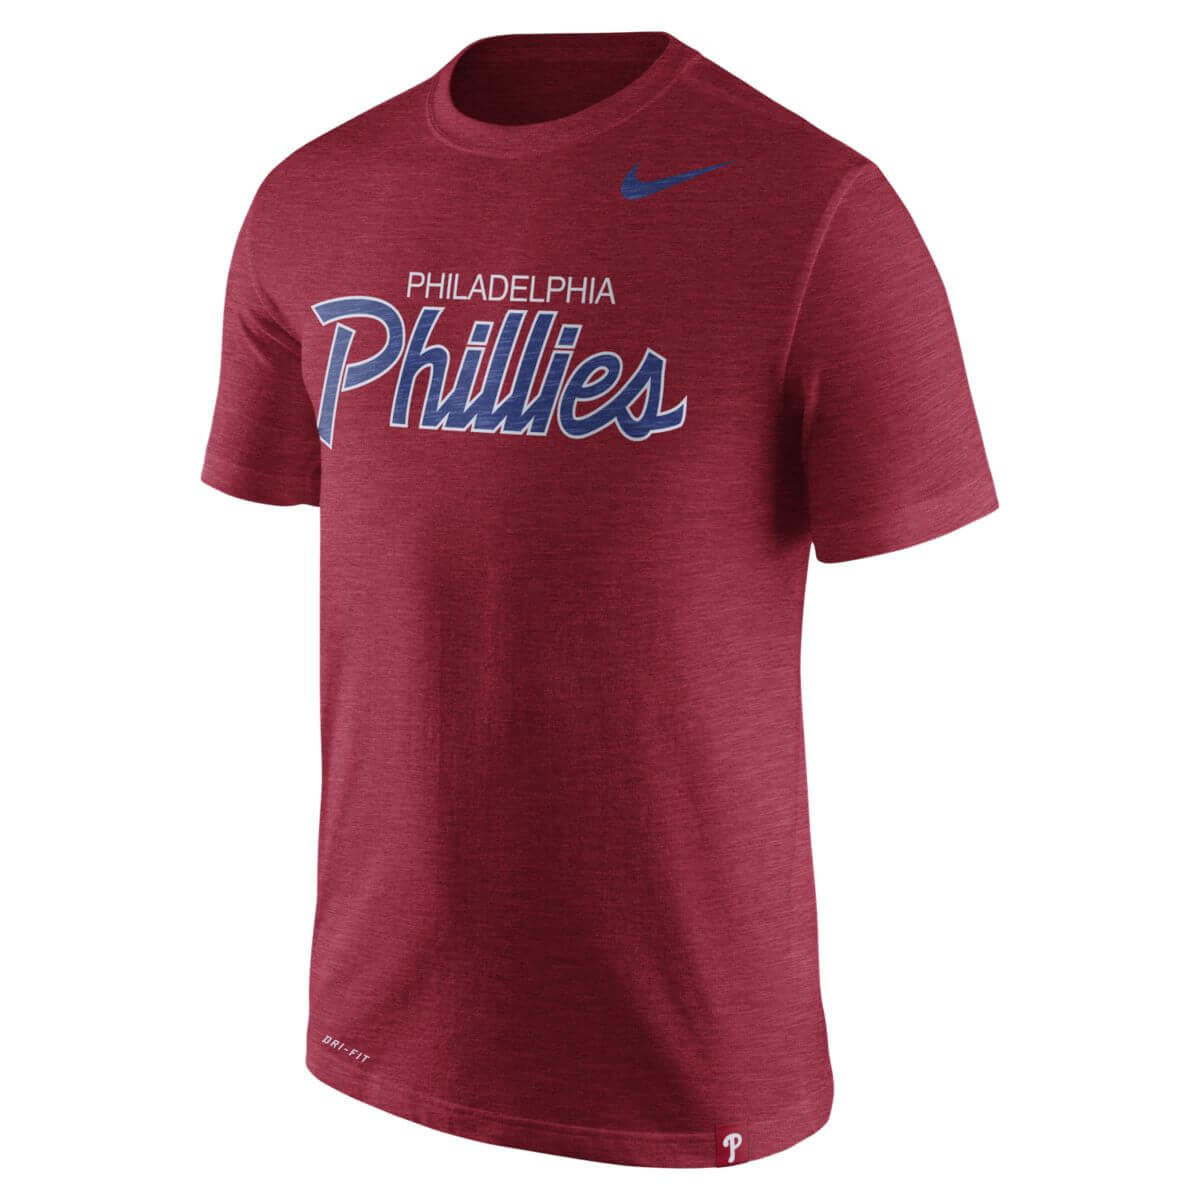 Philadelphia Phillies Adult Script T-Shirt